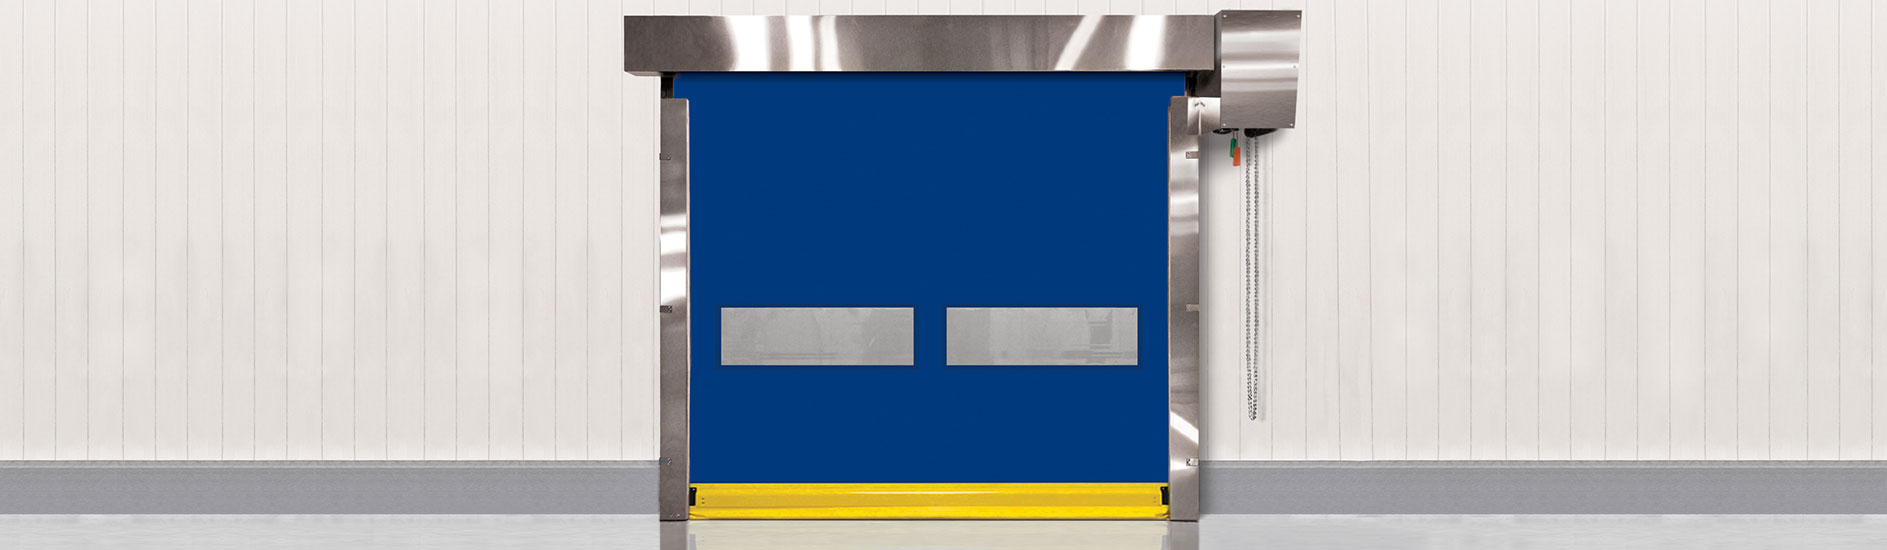 doors for retail storefront security